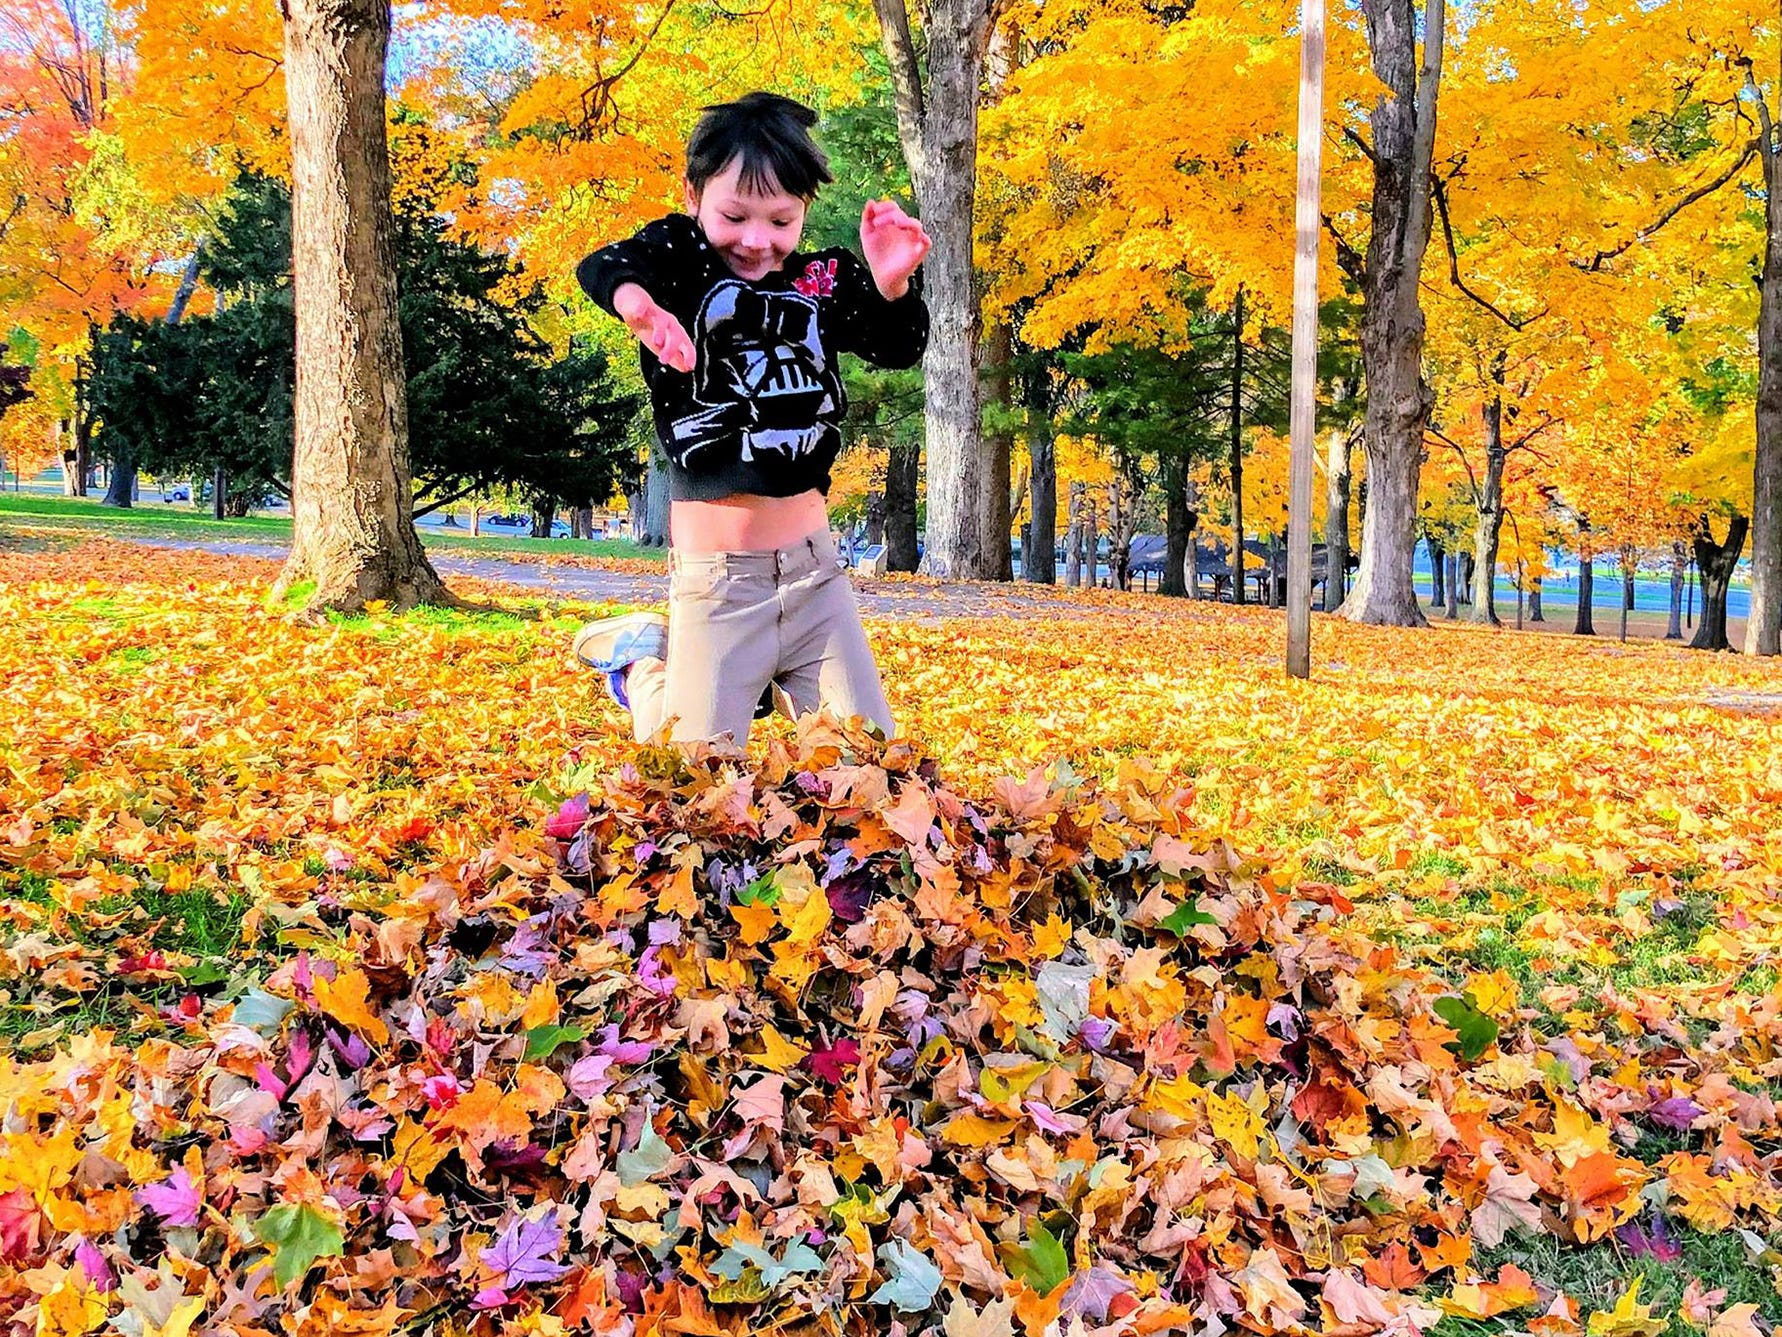 Missy Richter Manning caught a leaf pile getting jumped on at Farquhar Park in York